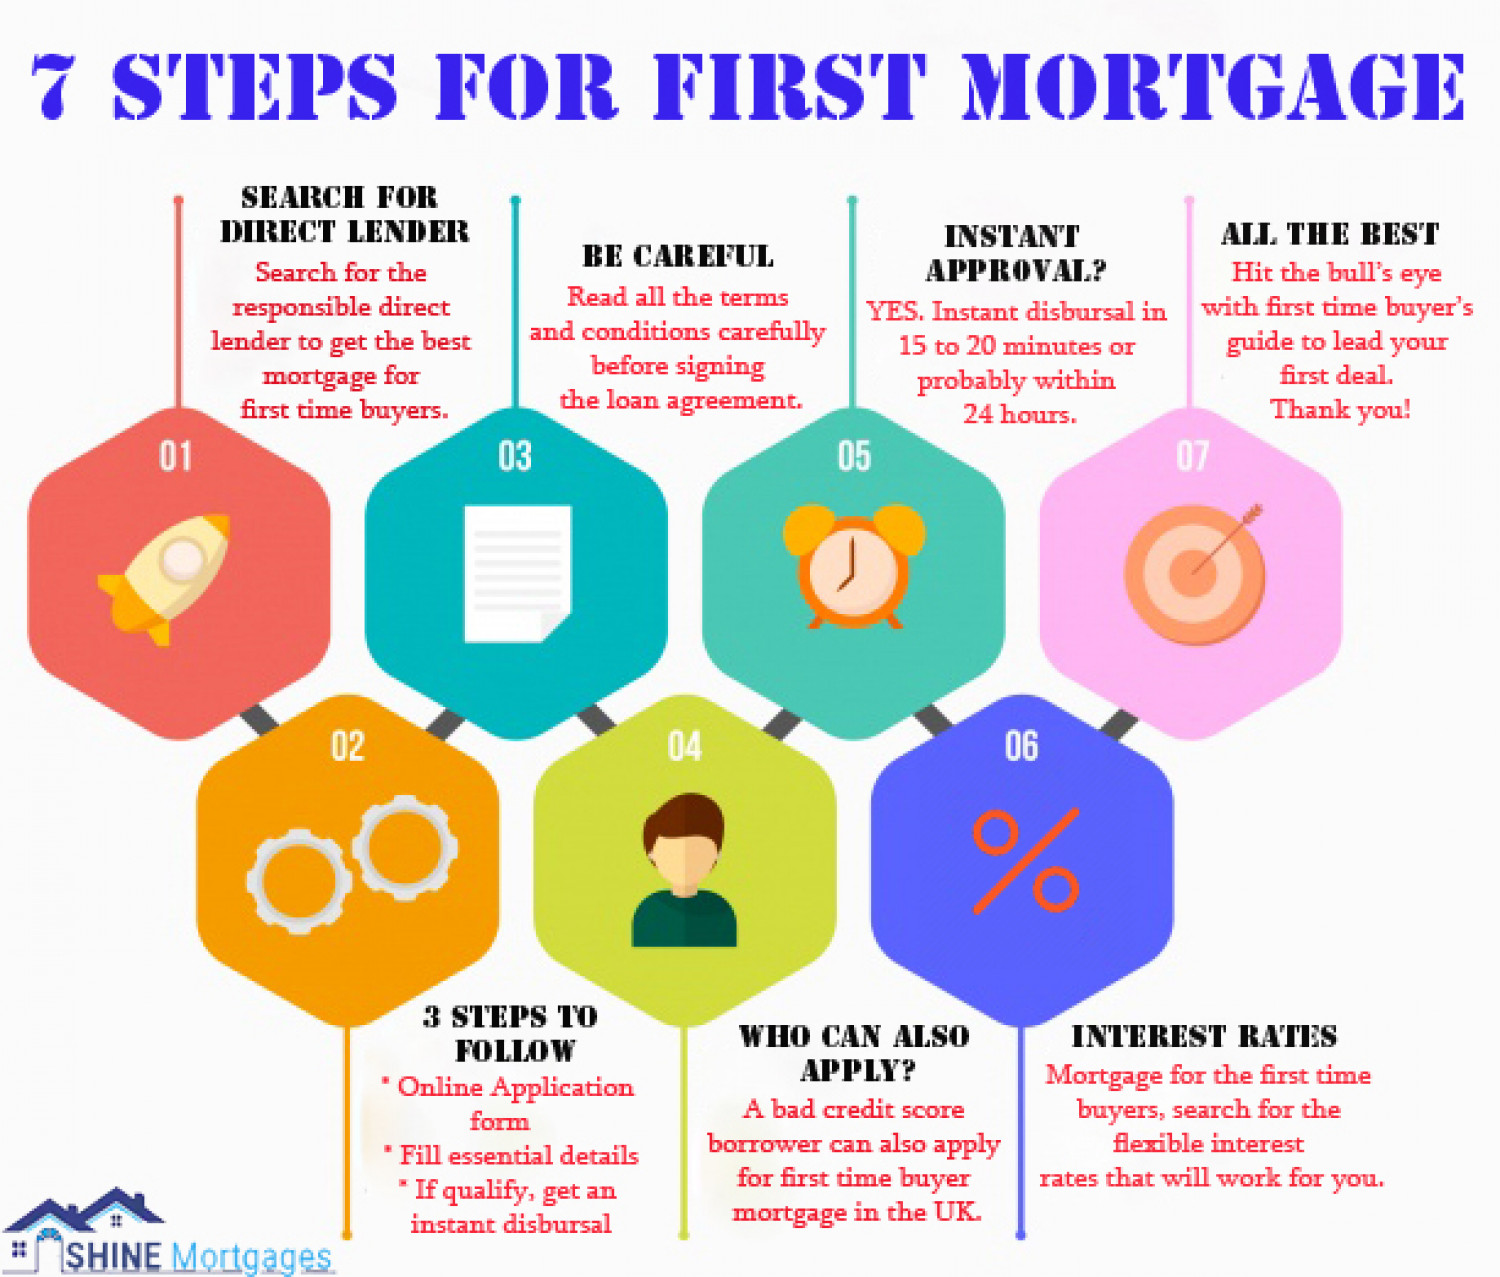 7 Steps For First Mortgage Infographic